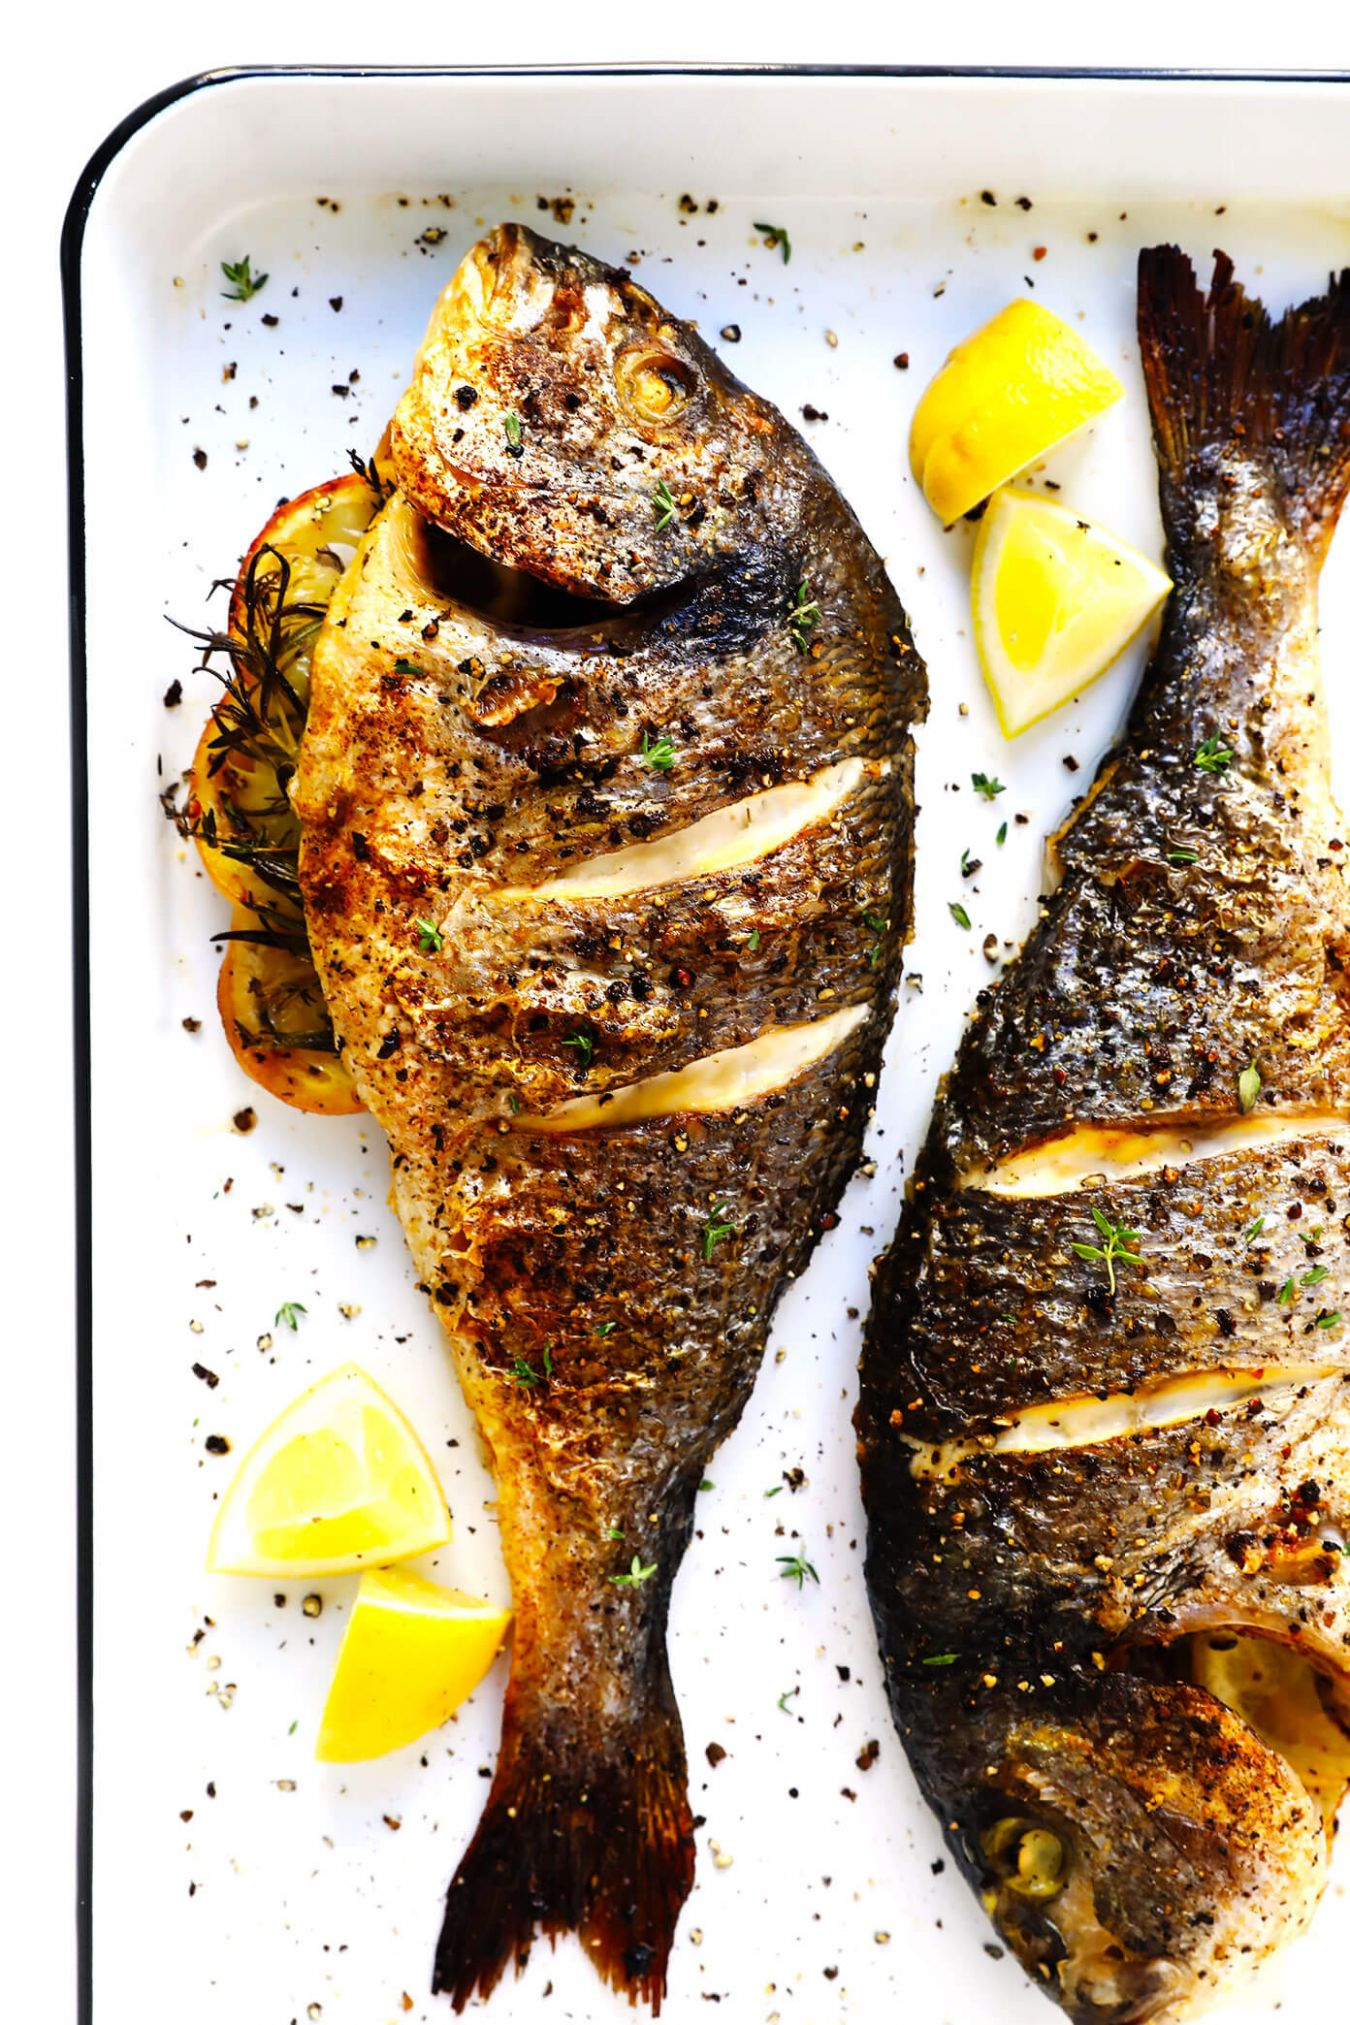 How To Cook A Whole Fish - Recipes Red Fish